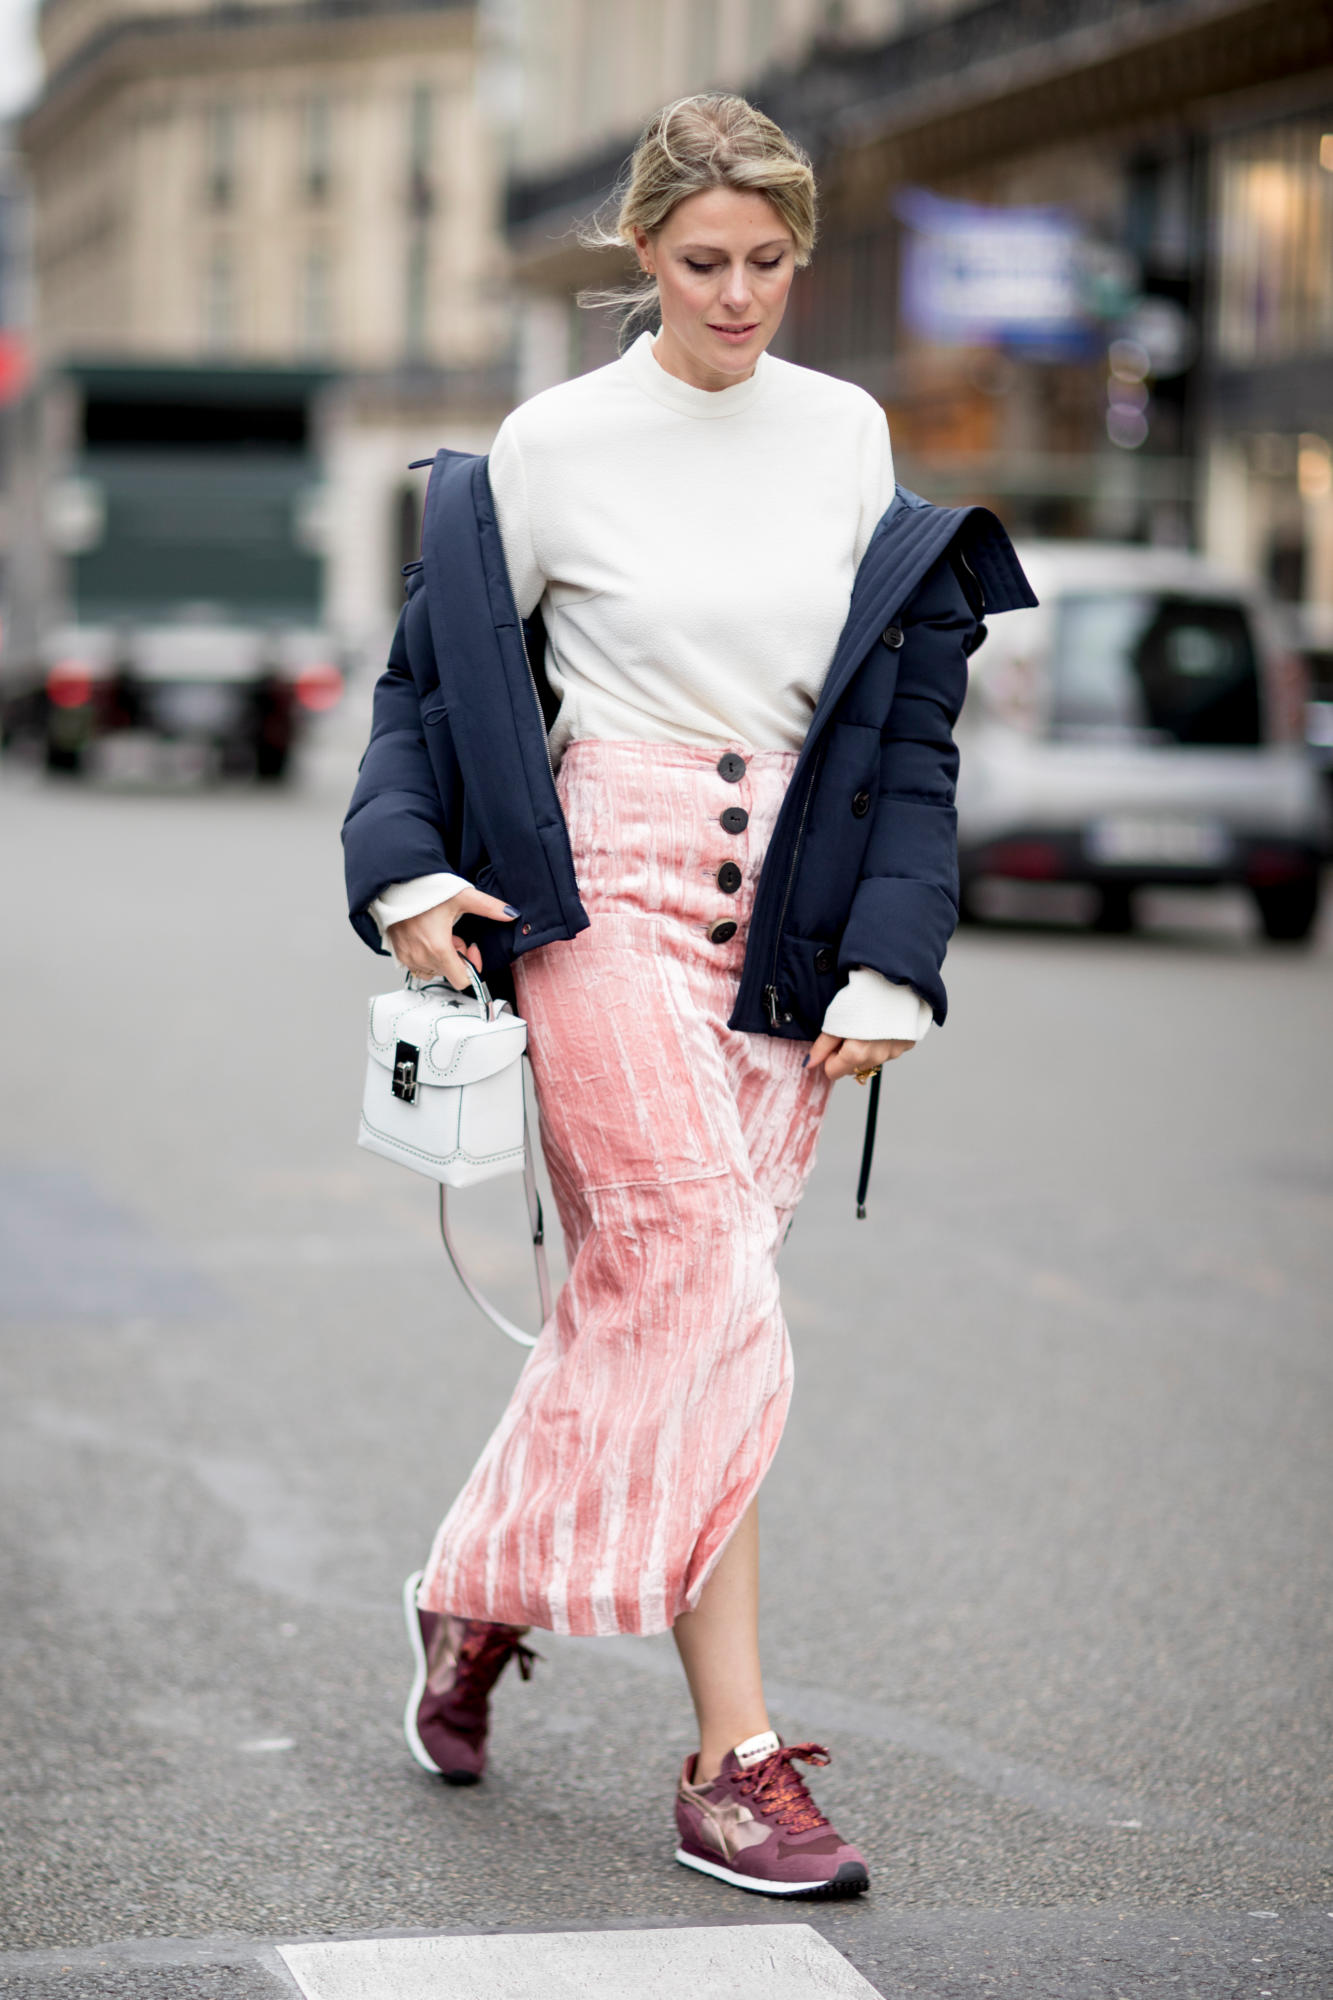 pink-light-midi-skirt-burgundy-shoe-sneakers-white-bag-white-sweater-turtleneck-black-jacket-coat-puffer-blonde-paris-fashion-week-street-style-fall-winter-lunch.jpg